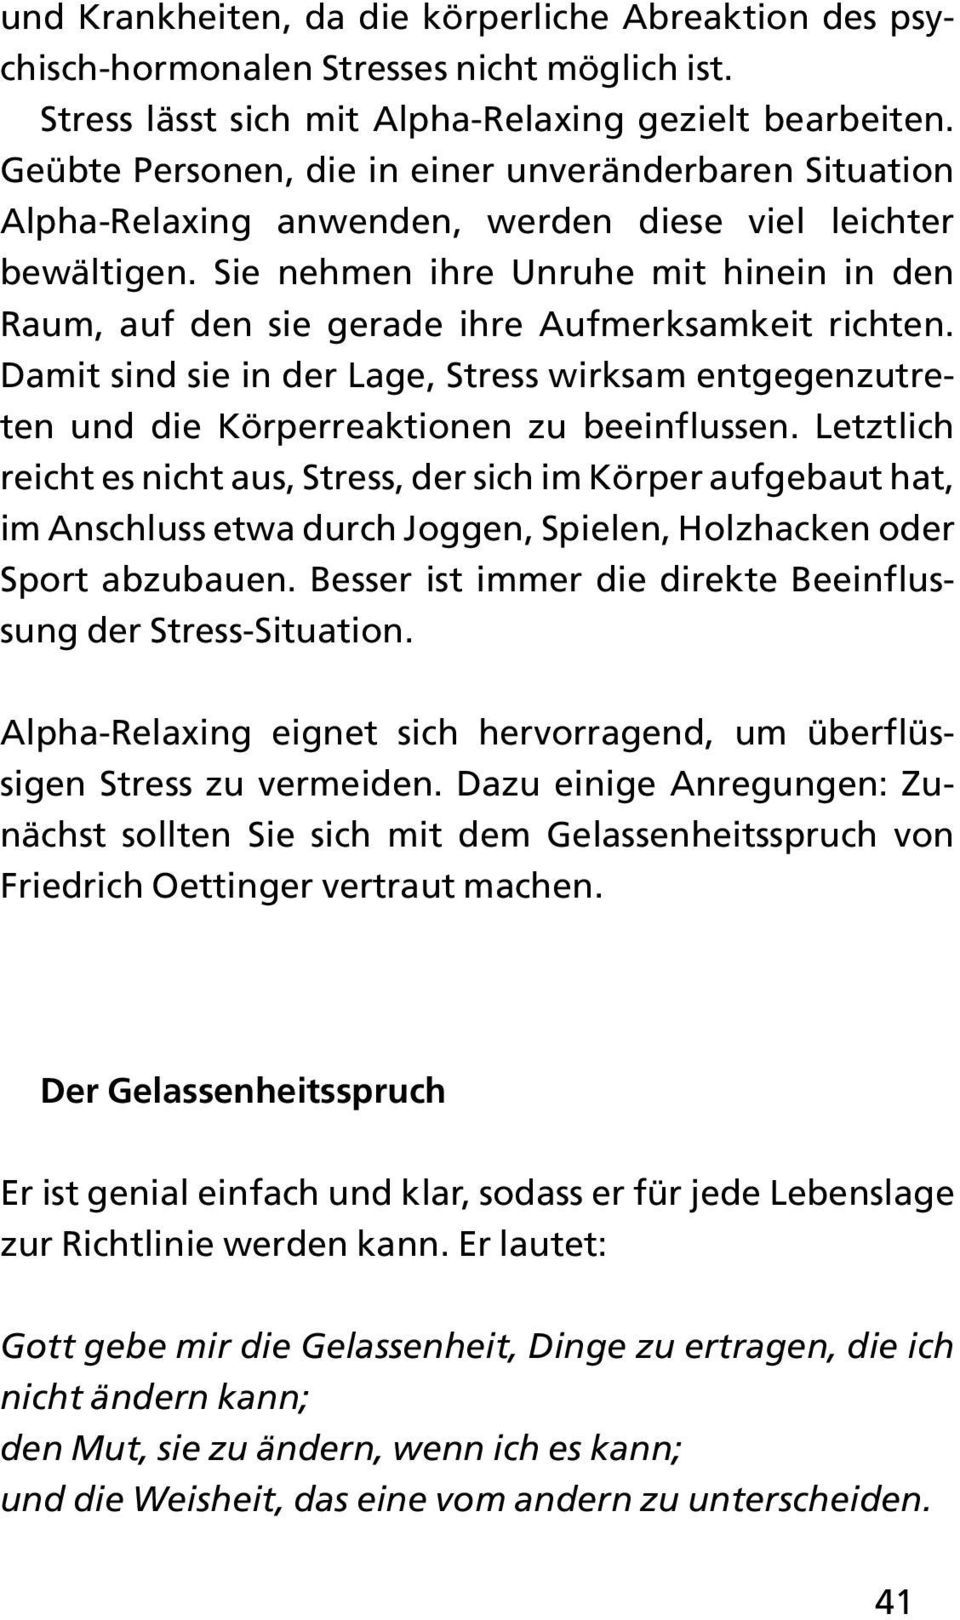 körperreaktionen bei stress